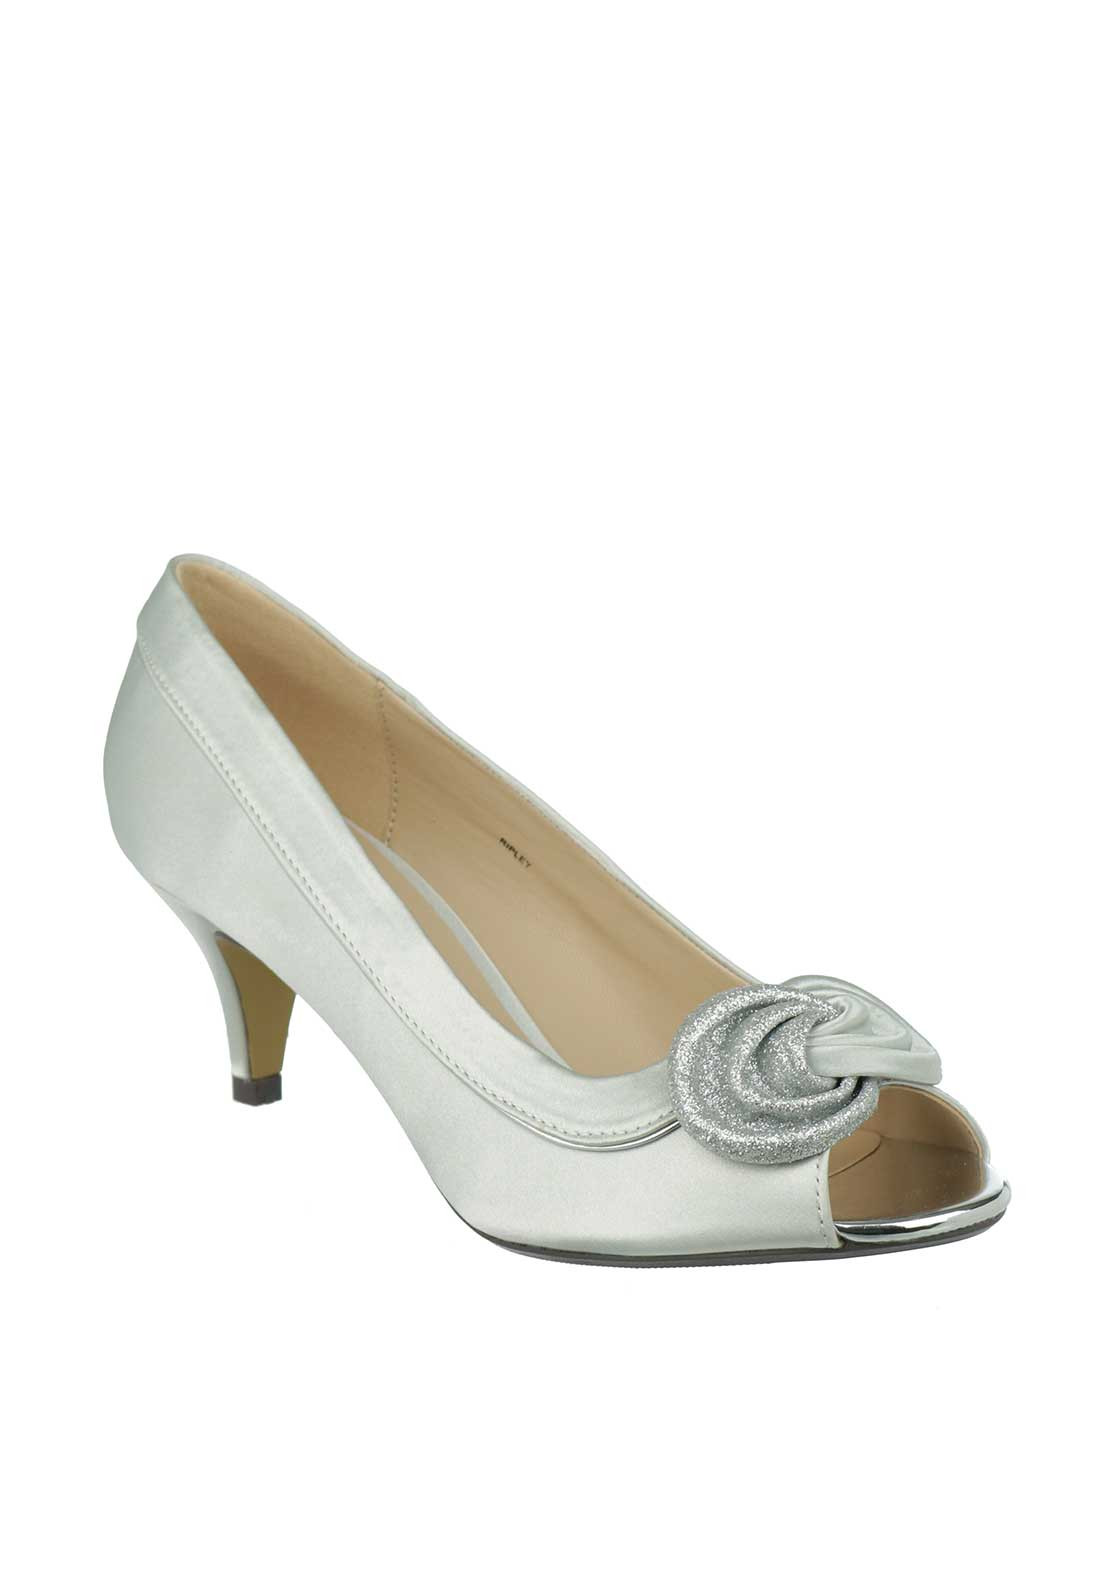 Lunar Elegance Ripley Satin Heeled Shoes, Silver